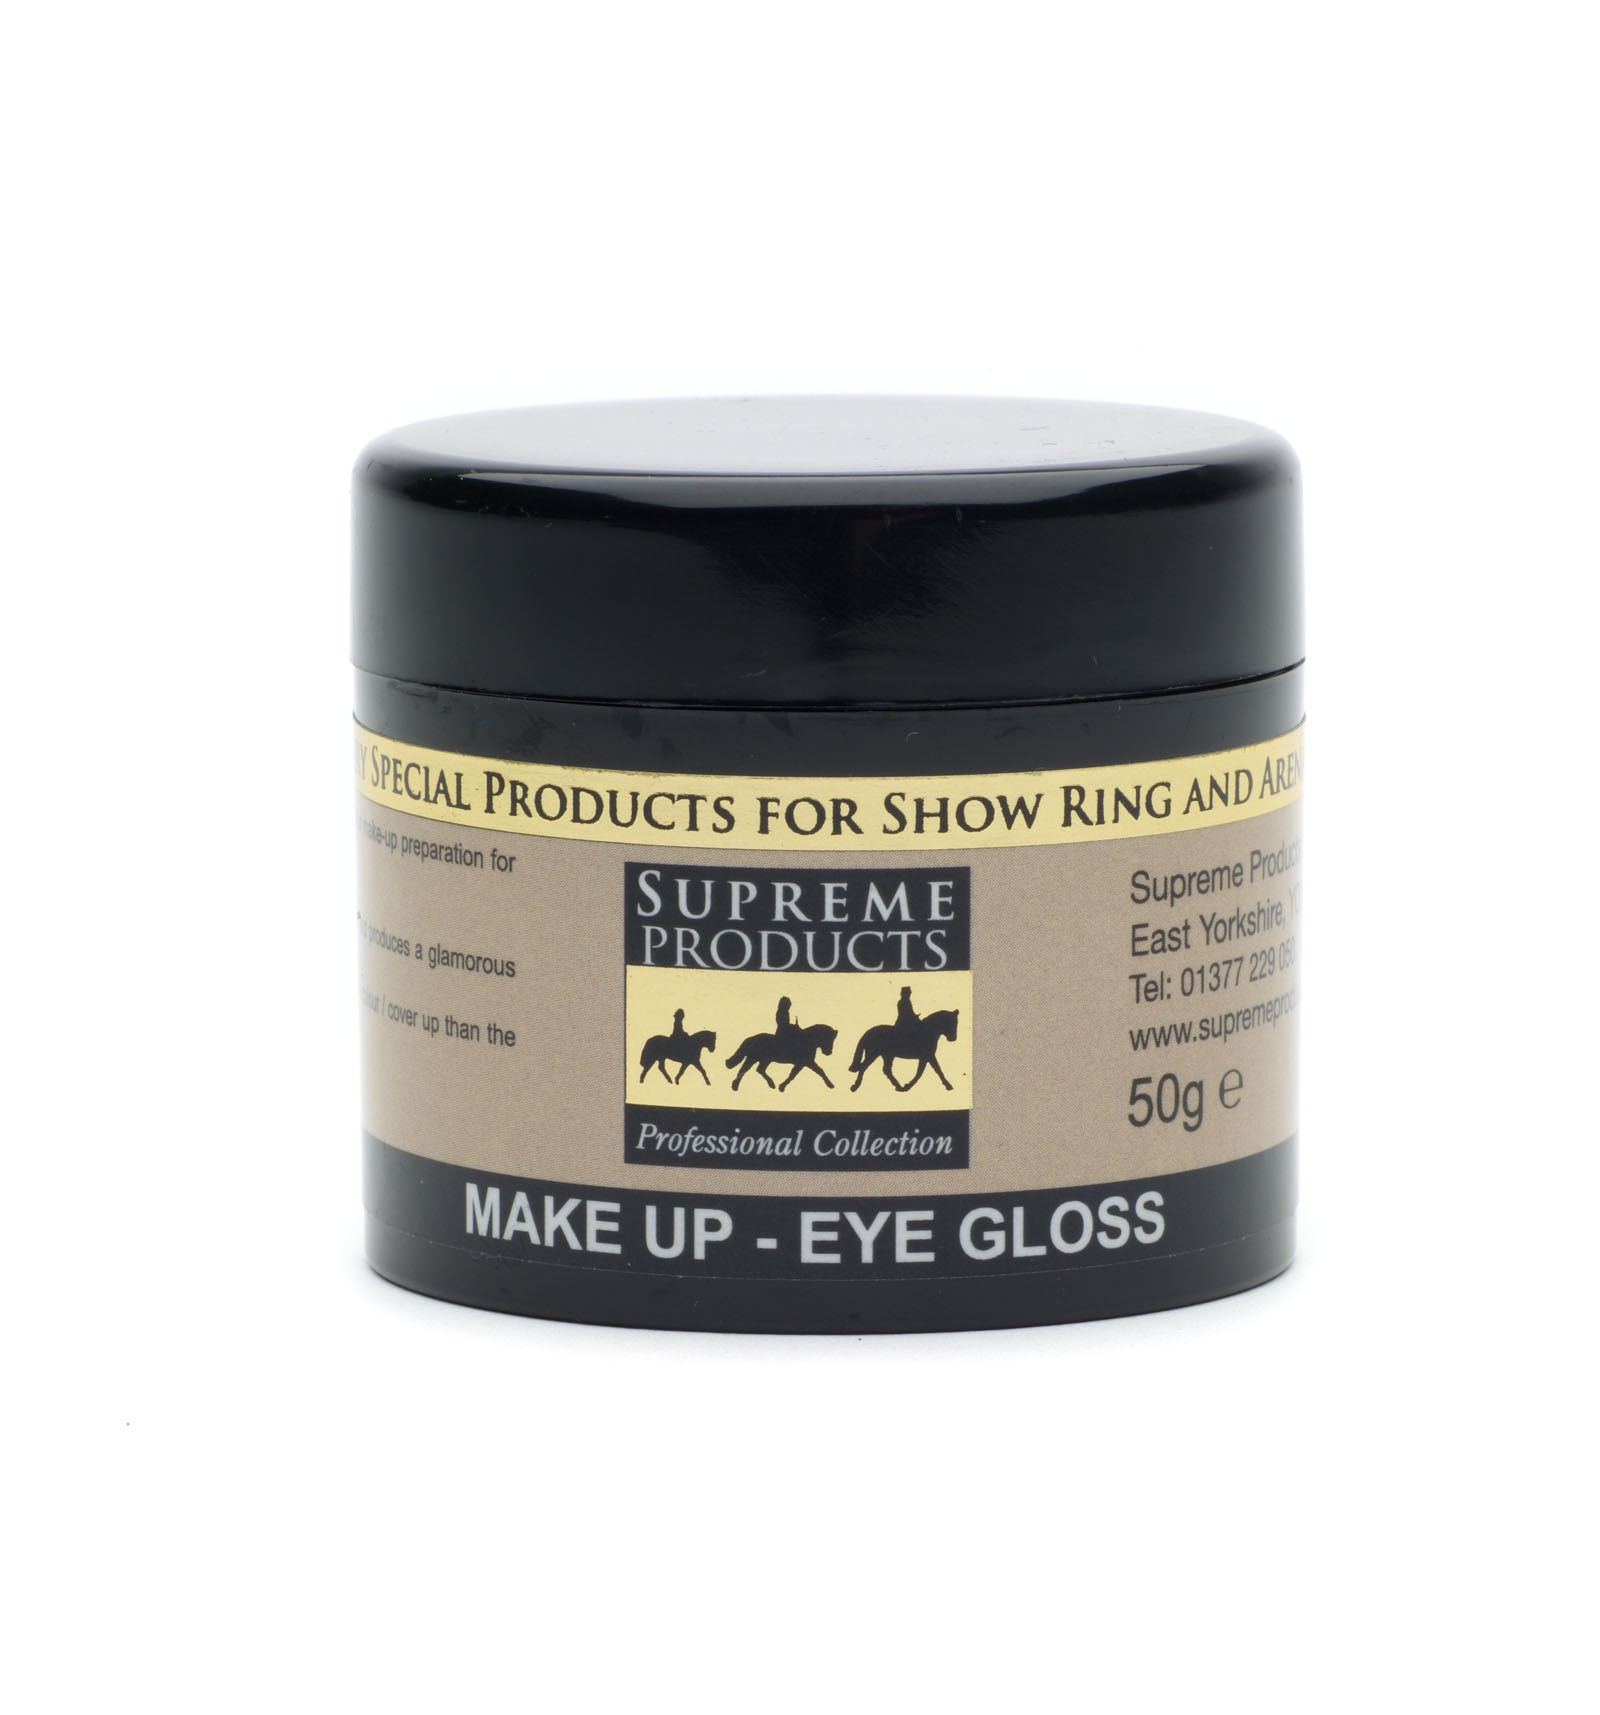 Supreme Products Eye Gloss  - Thomas Irving's equestrian and accessories store  Supreme Products Make Up Eye Gloss